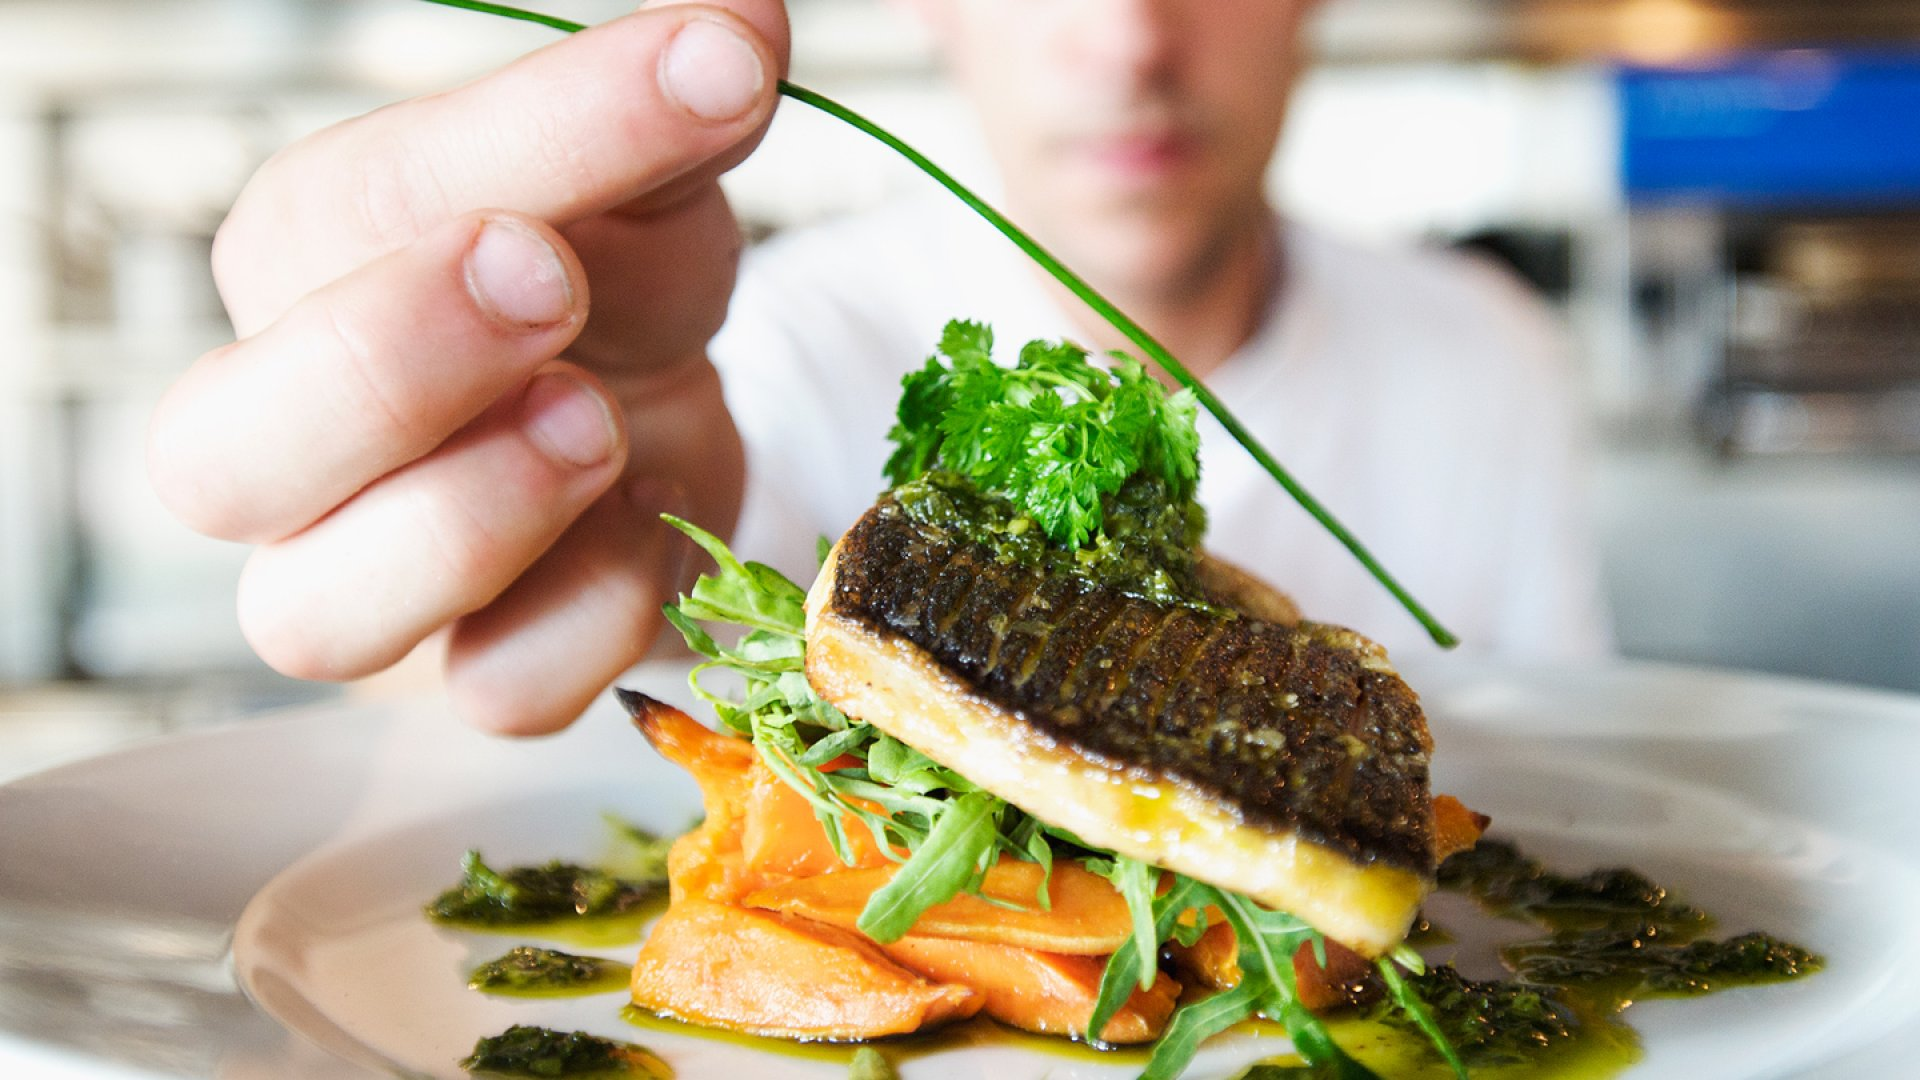 The Next Big Thing in Business: Food